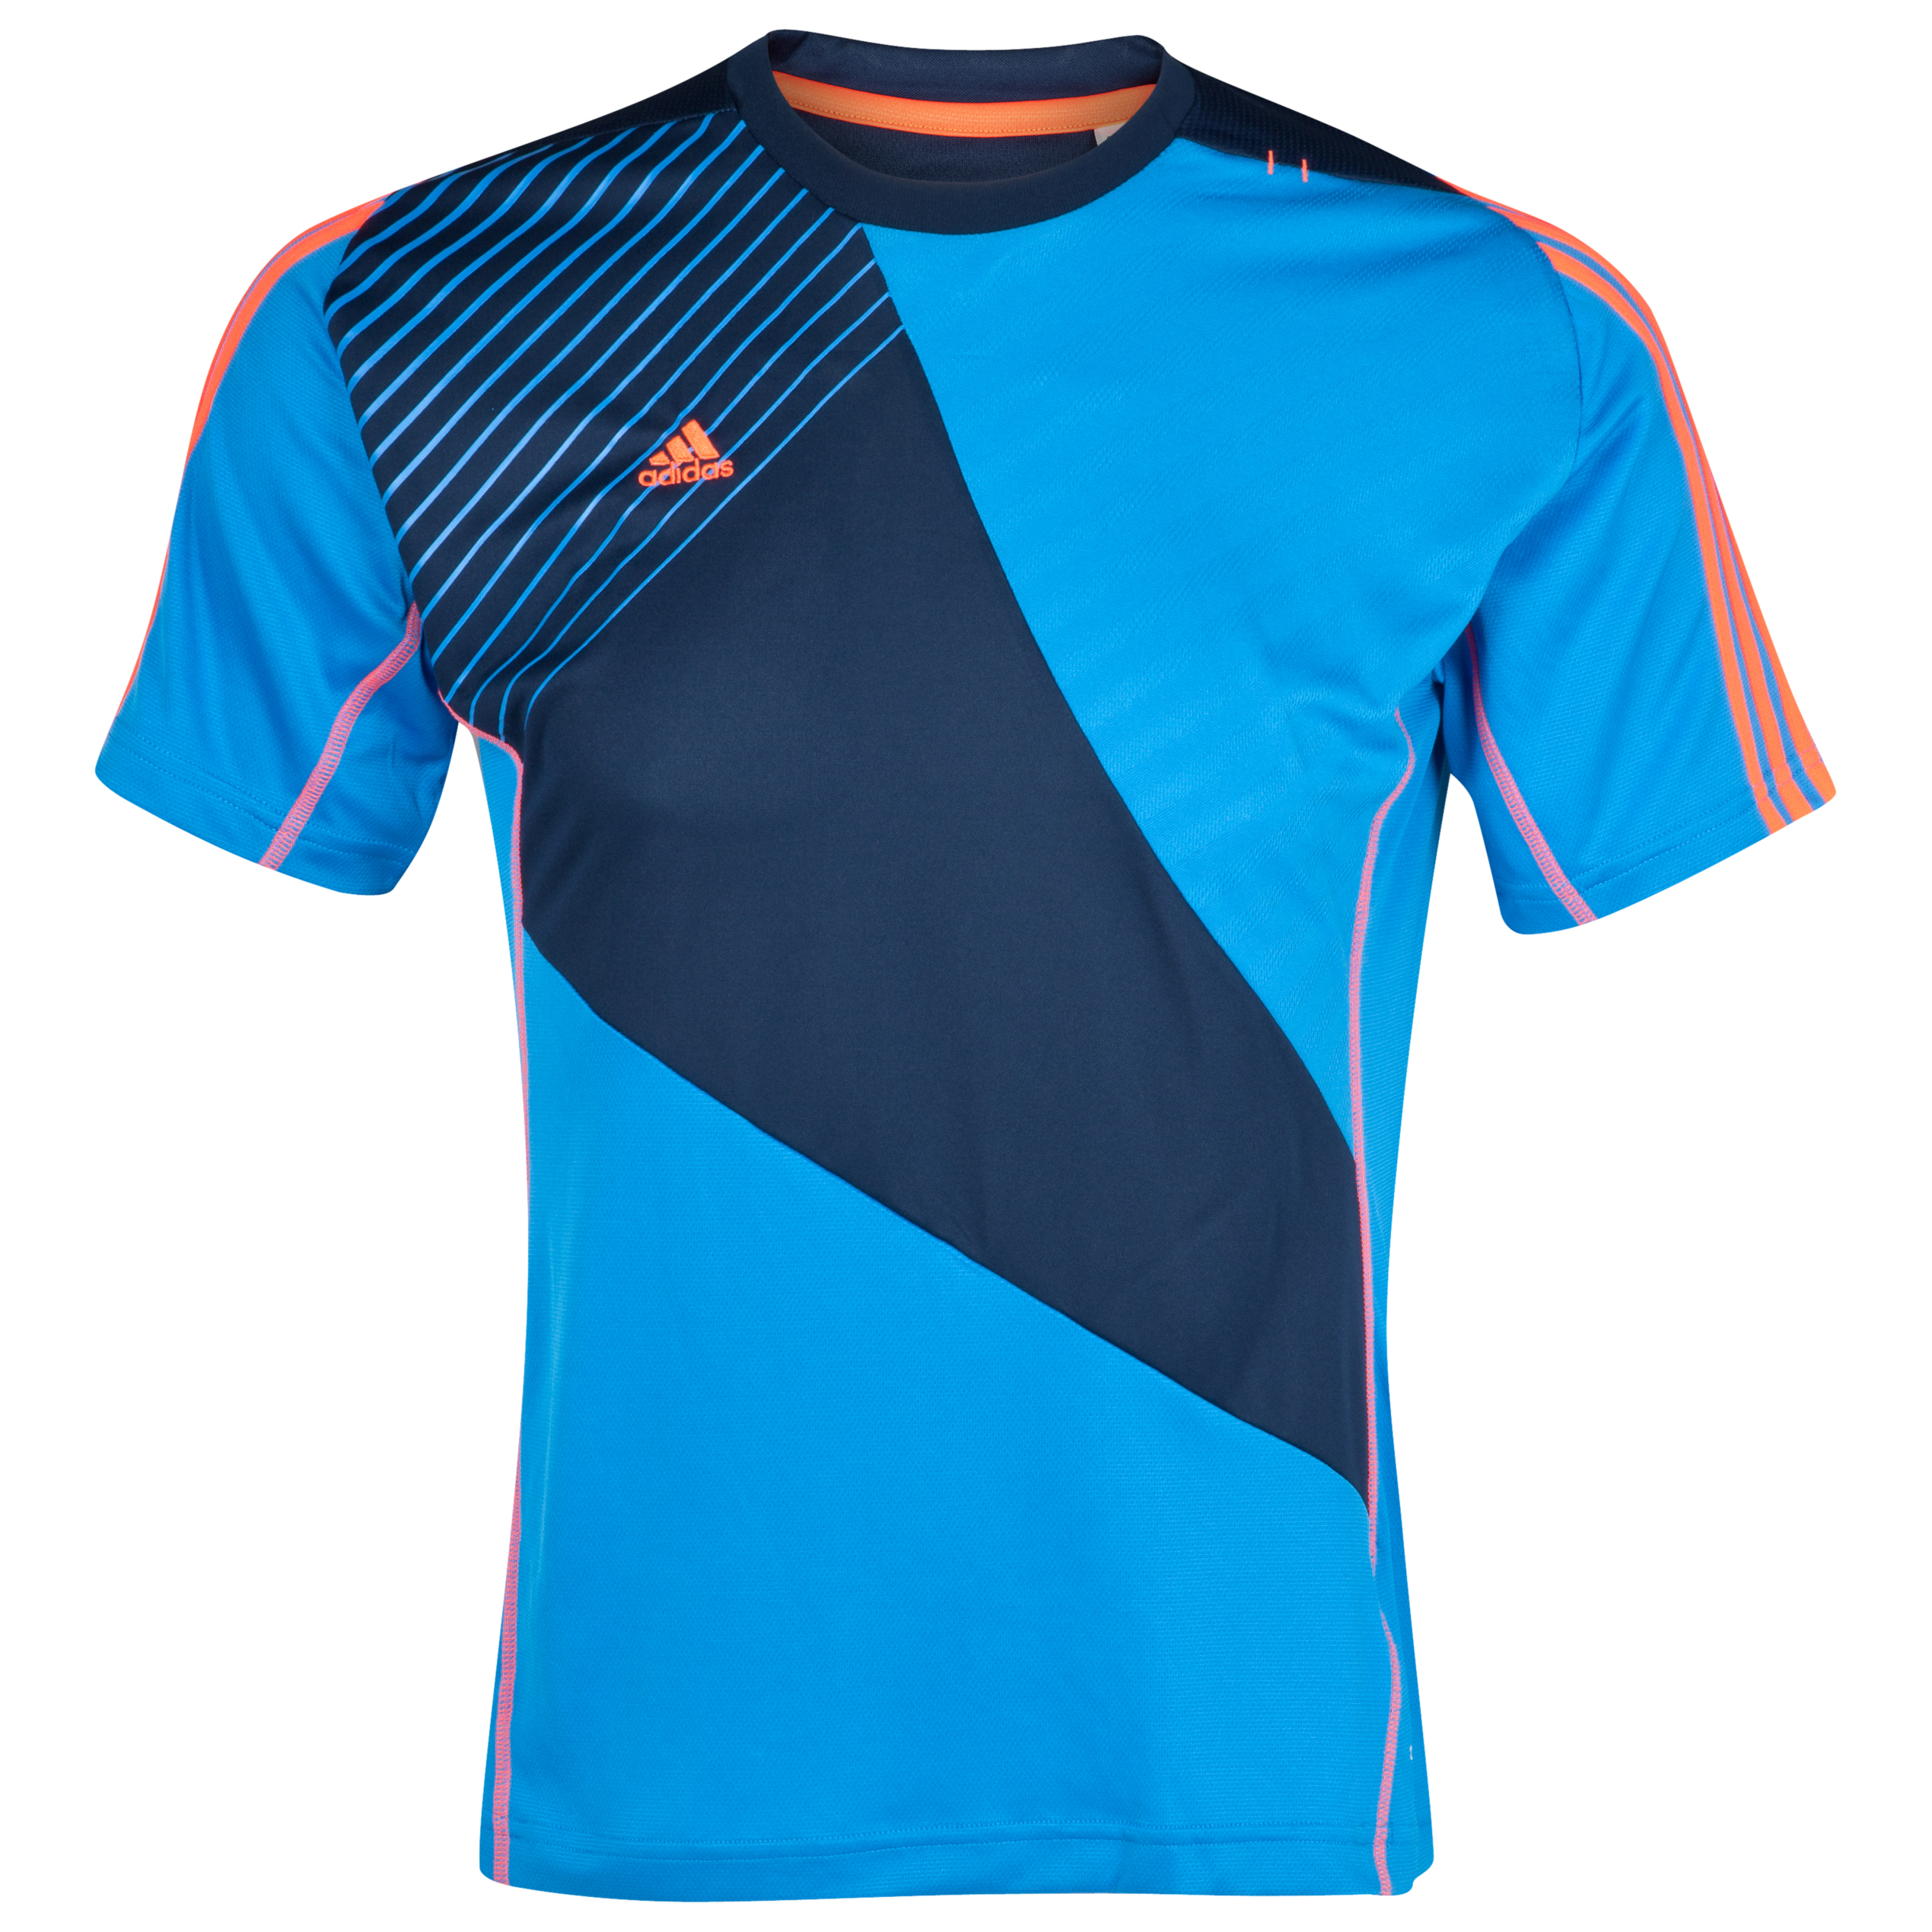 adidas Predator Training Jersey - Bright Blue/Infrared